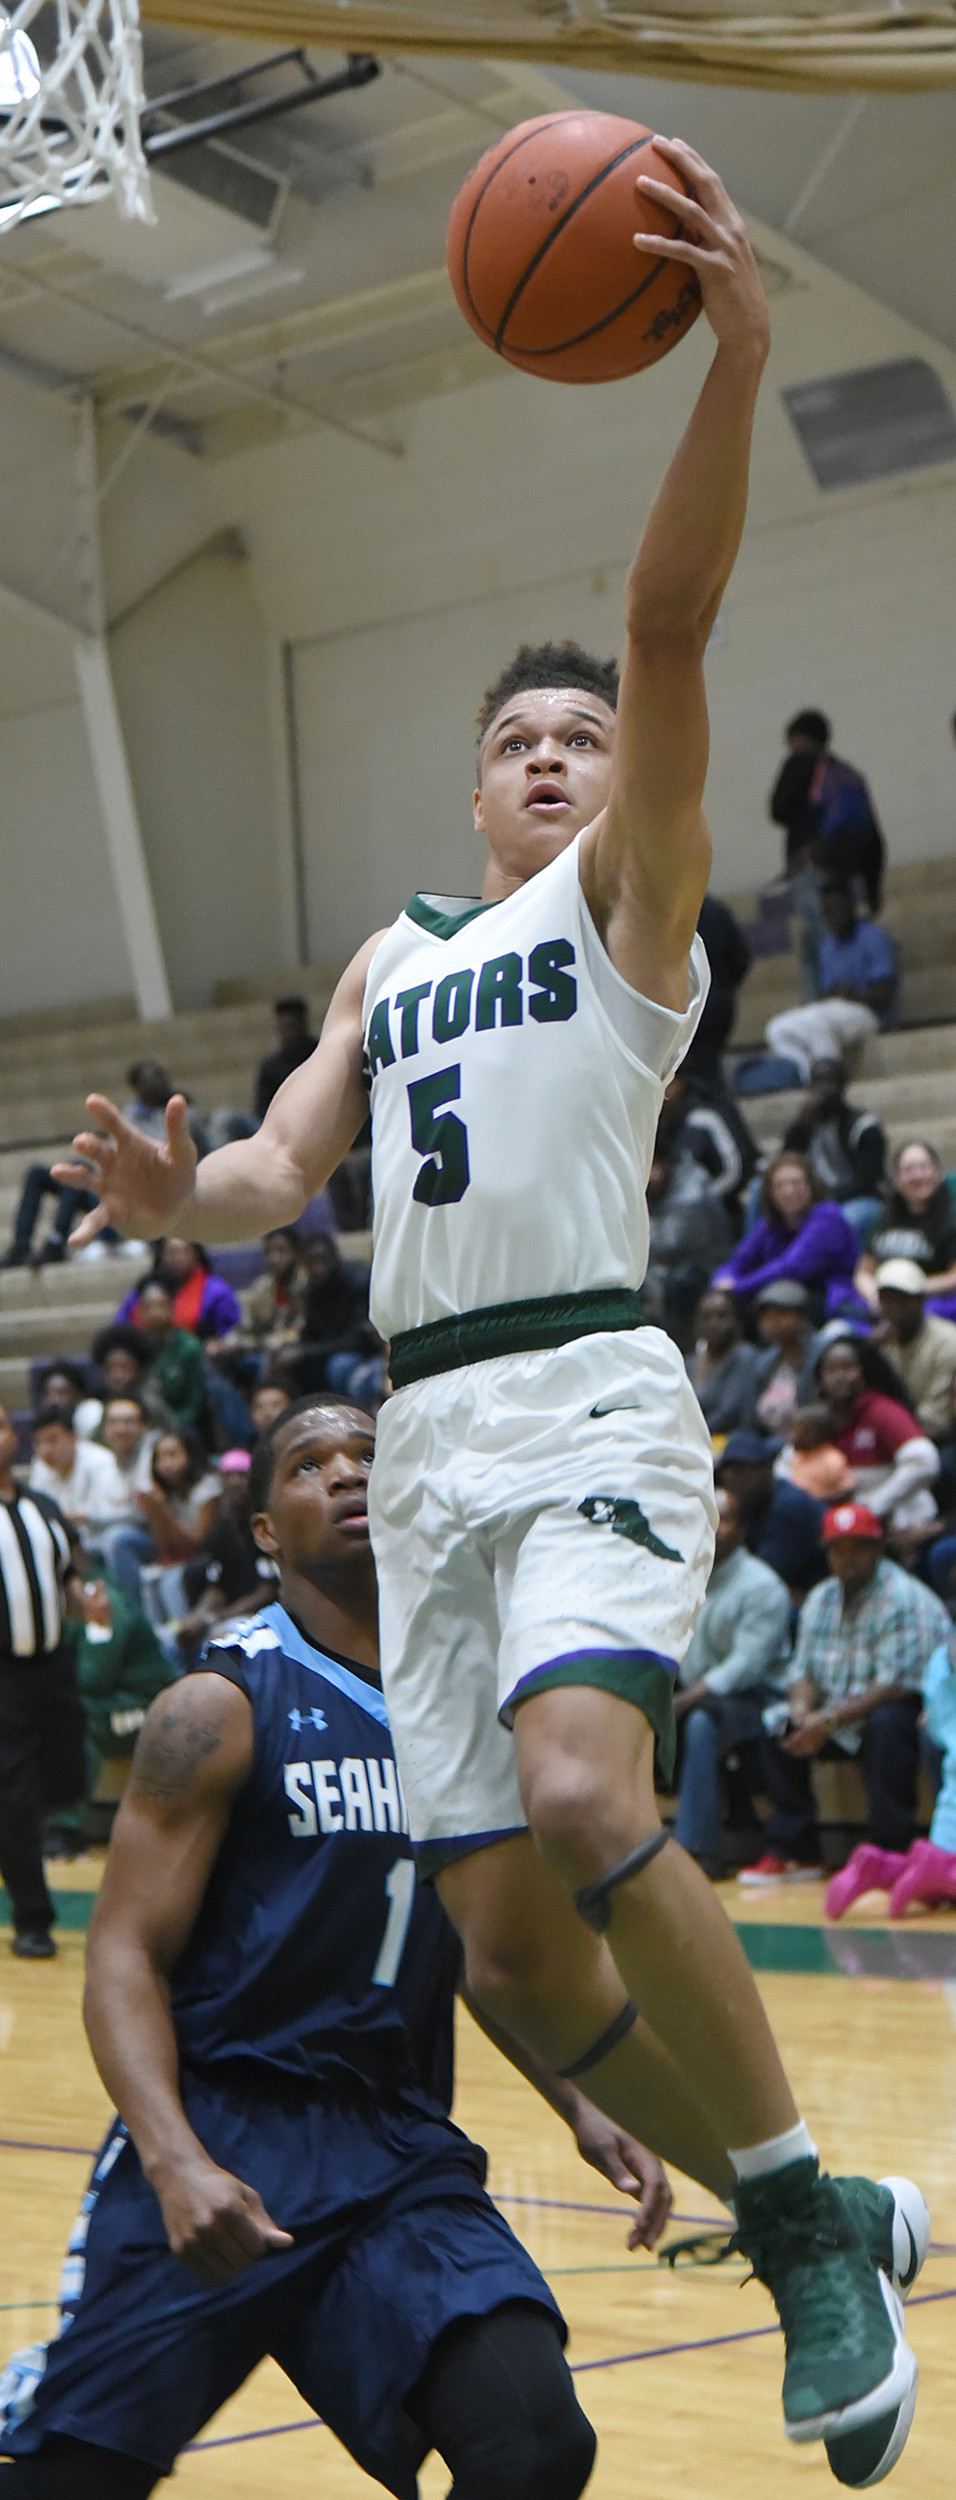 Lakewood's Grant Singleton (5) is rated as one of the top five players in 4A entering this season after averaging 20 points and helping the Gators to their first ever region title.